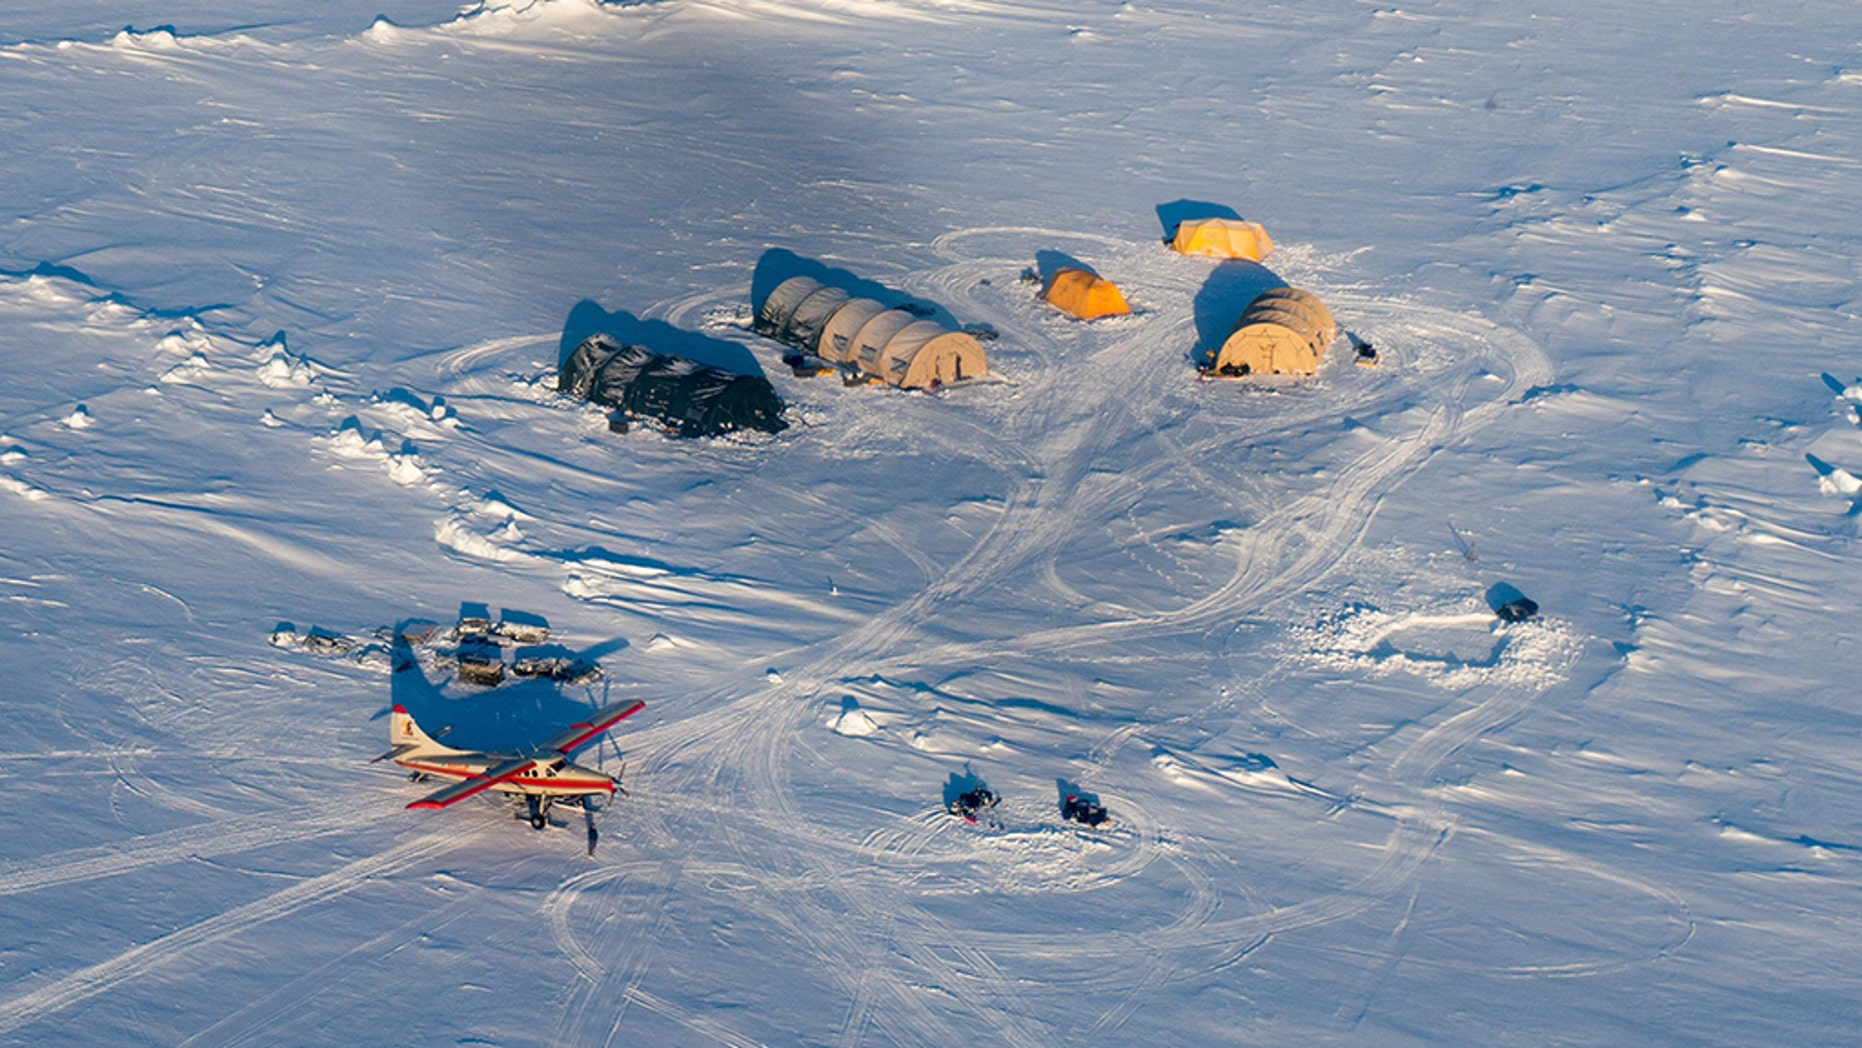 A helicopter flies over Arctic ice towards the Applied Physics Laboratory Ice Station in Alaska.